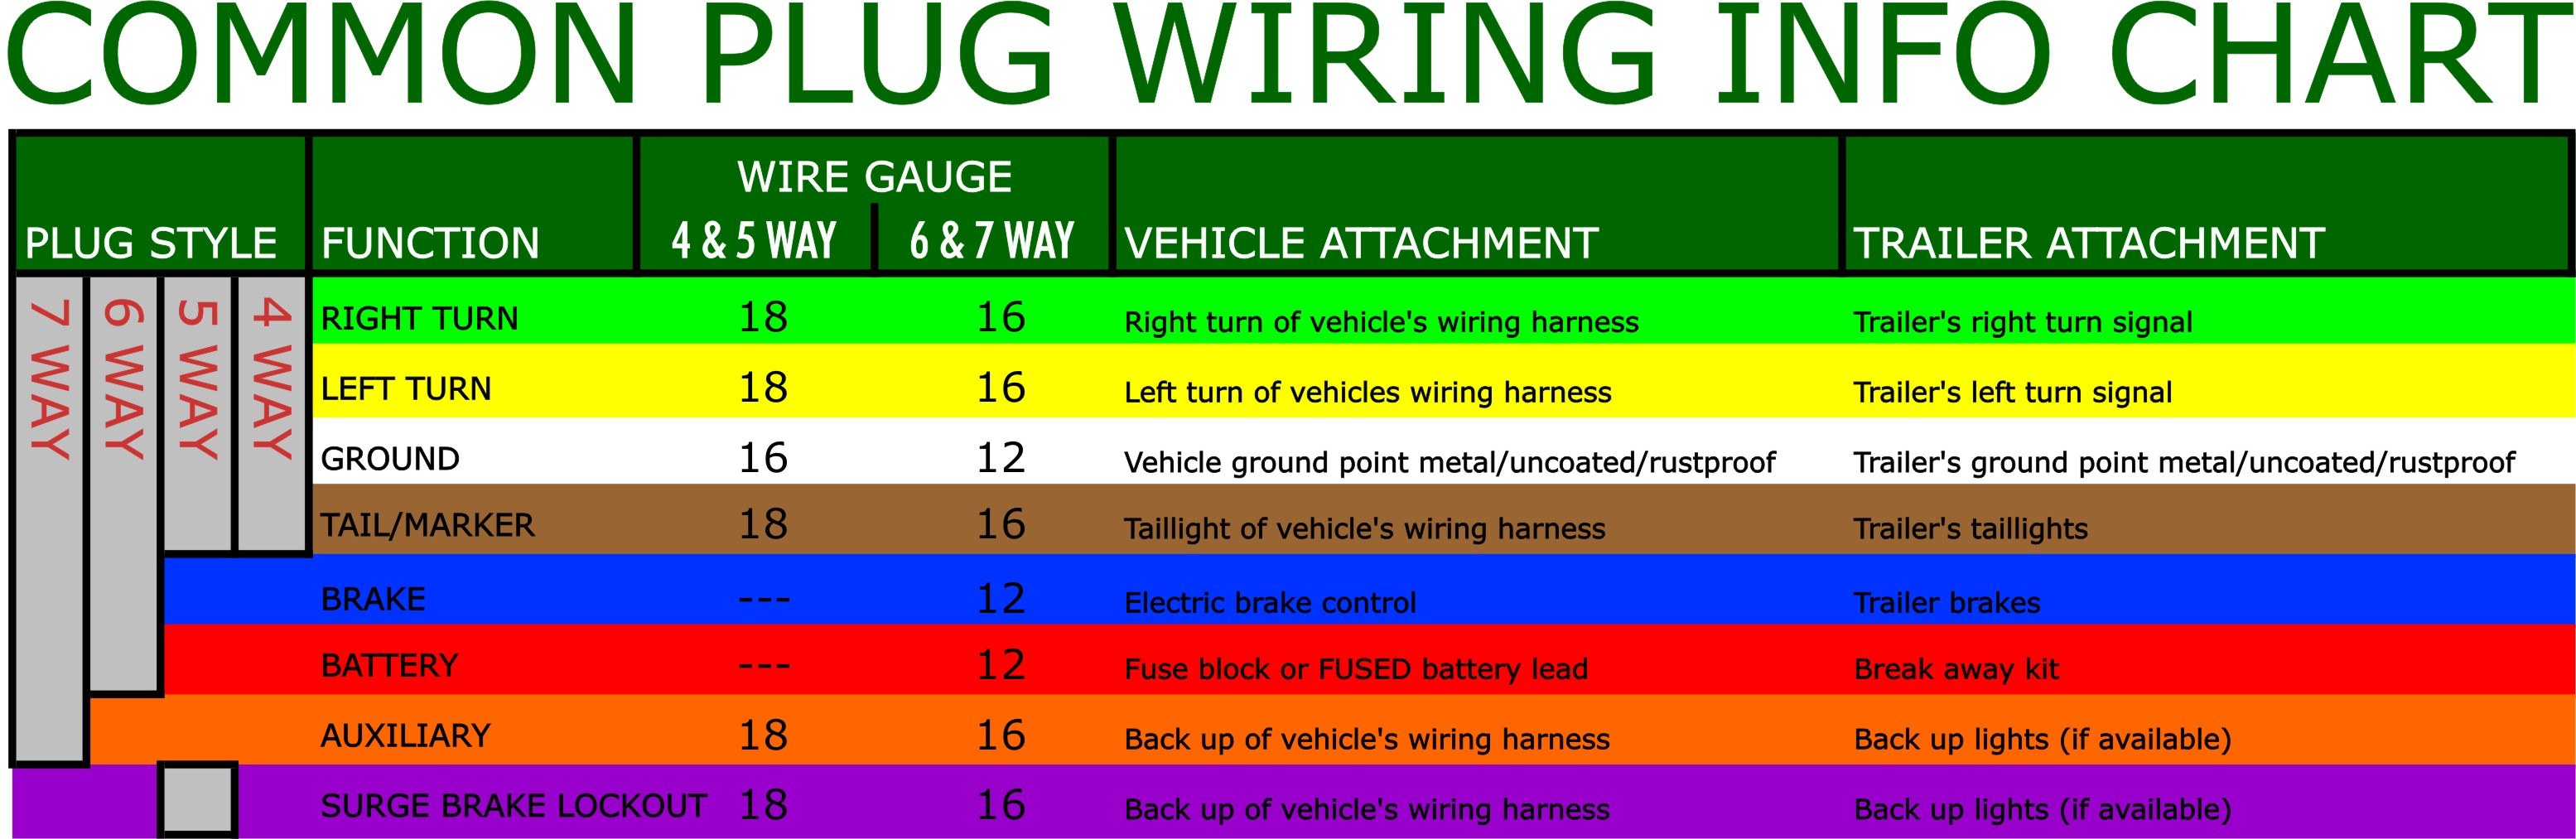 What Are The Most Common Trailer Plugs? - Wiring Diagram For Trailer Plug On Car